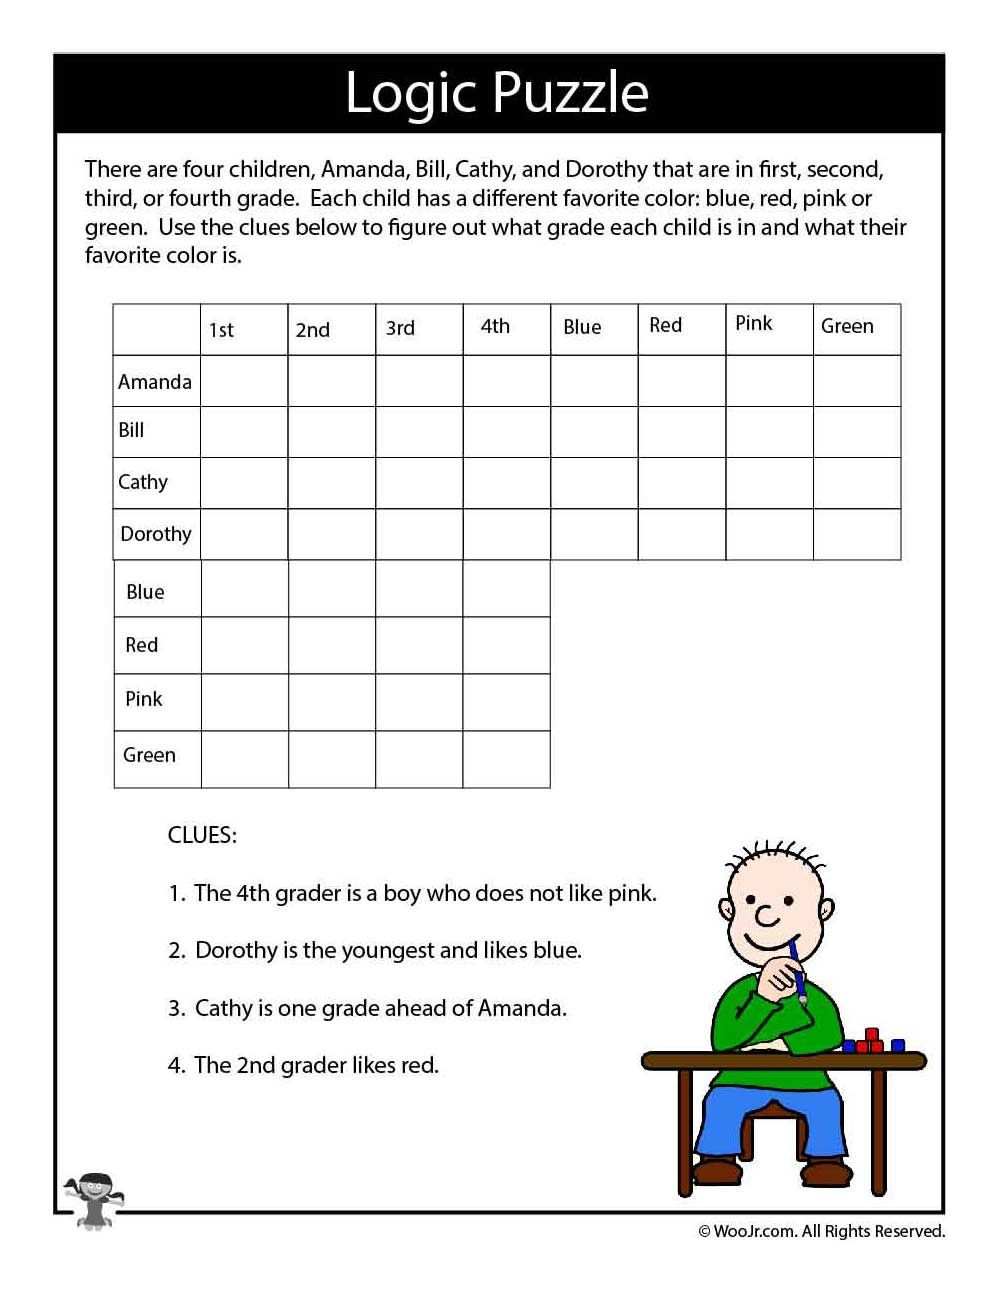 Middle School Math Puzzles Printable Hard Logic Puzzle for Kids Woo Jr Kids Activities